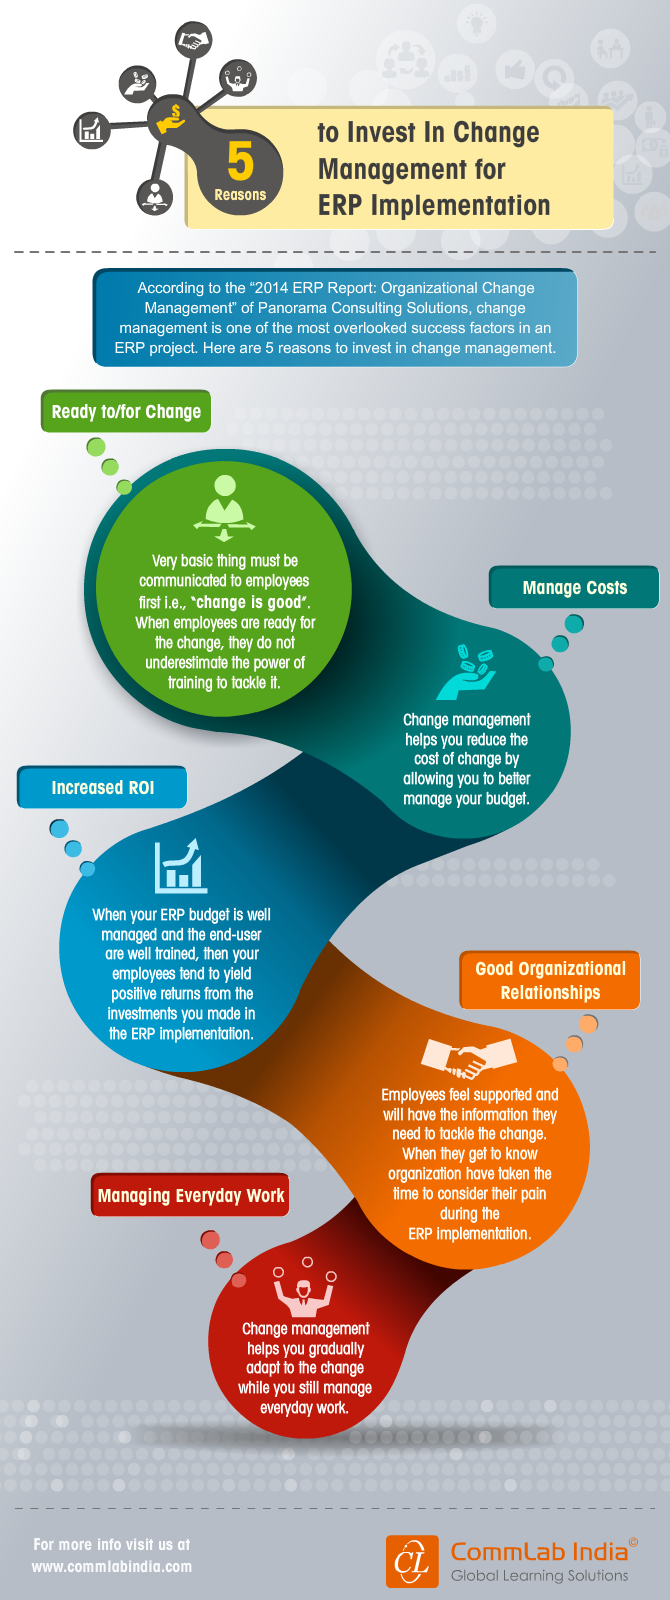 5 Reasons To Invest In Change Management For ERP Implementation [Infographic]